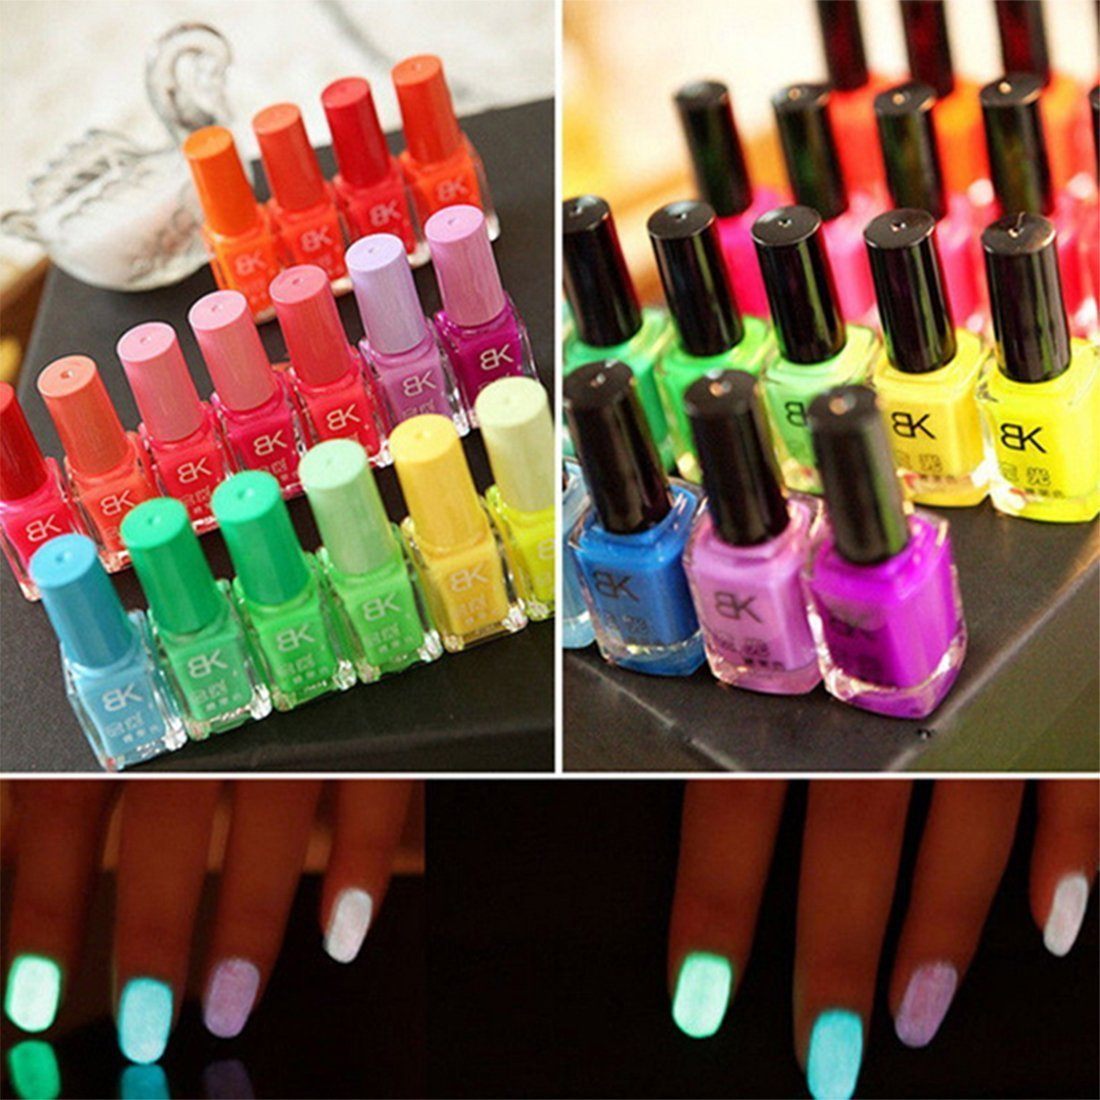 Buy 20 x NEON NAIL POLISH VARNISH SET 20 DIFFERENT BRIGHT NEON ...